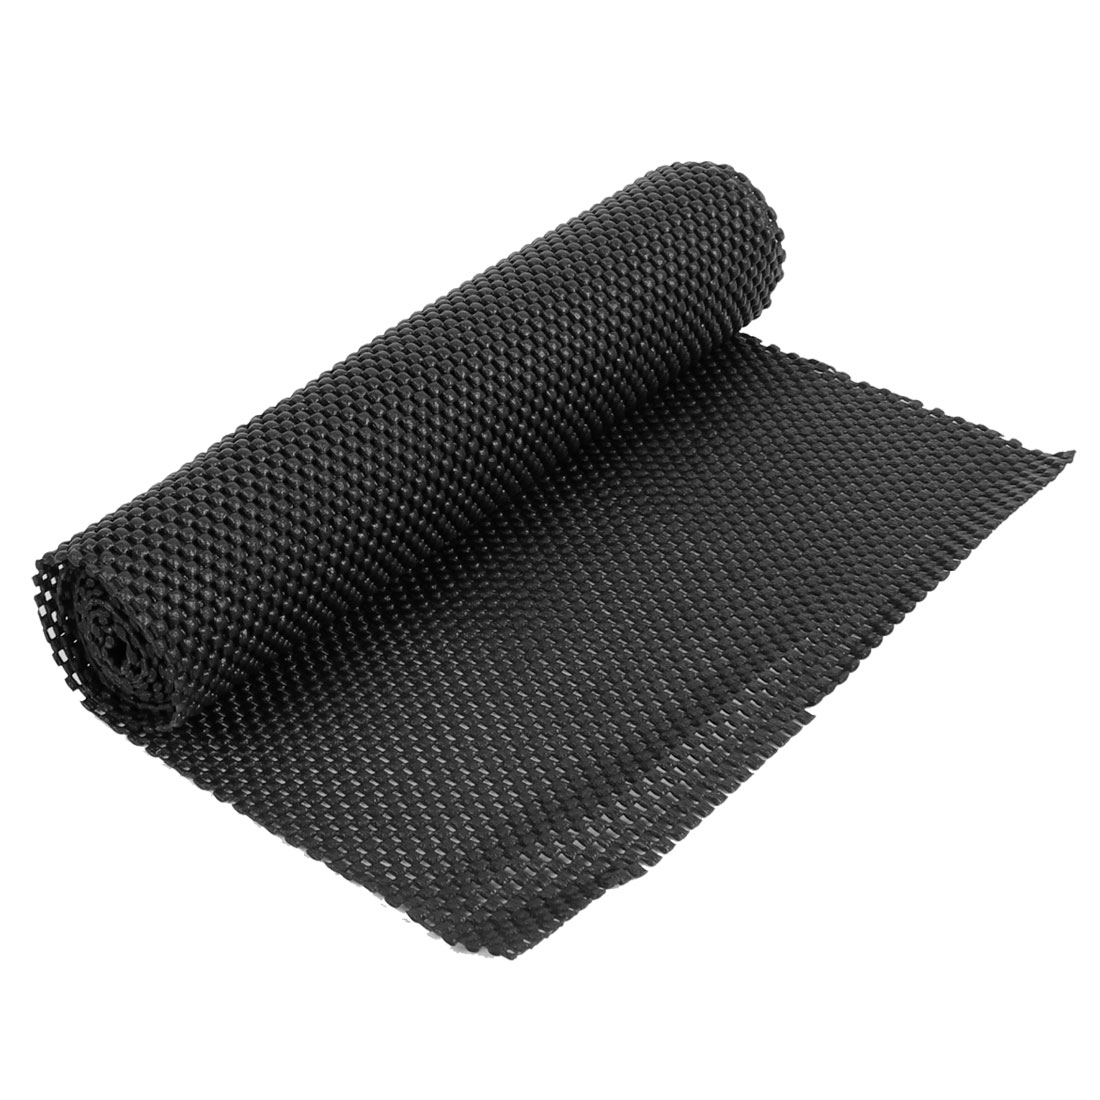 Unique Bargains Tailoring Soft Foam Anti Slip Mat Black